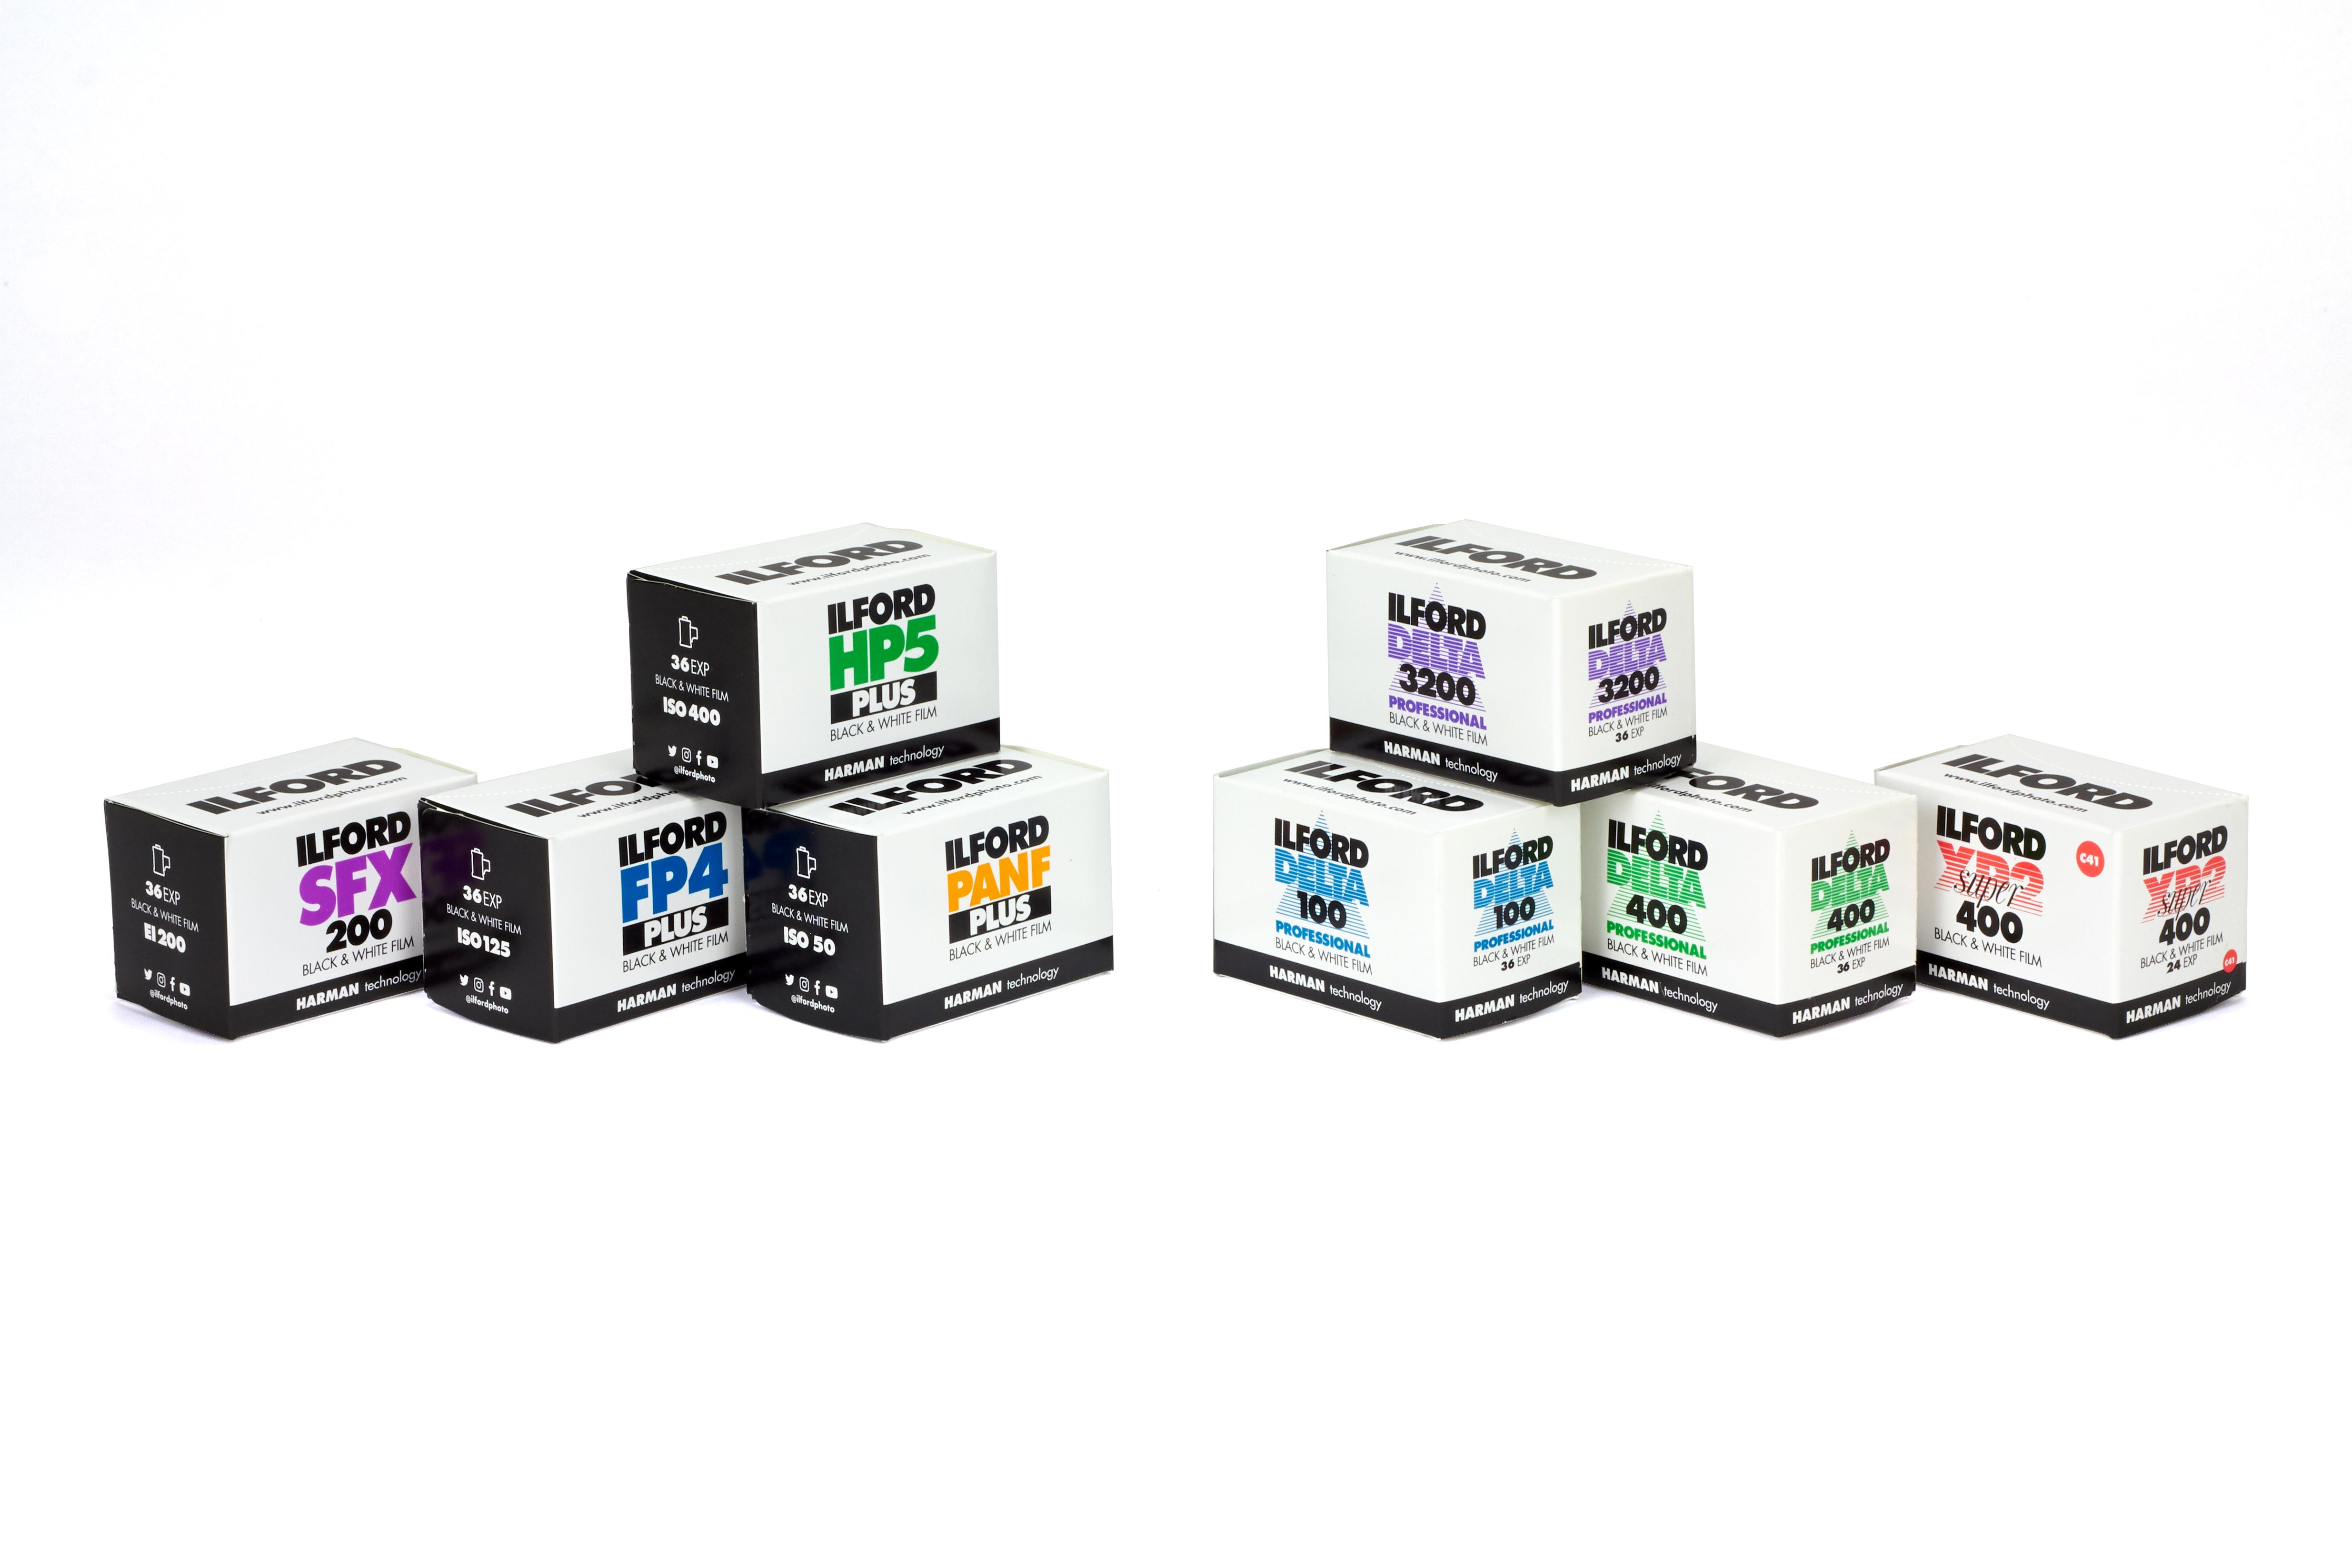 Pack shot of ILFORD PHoto black and white 35mm films in new packaging